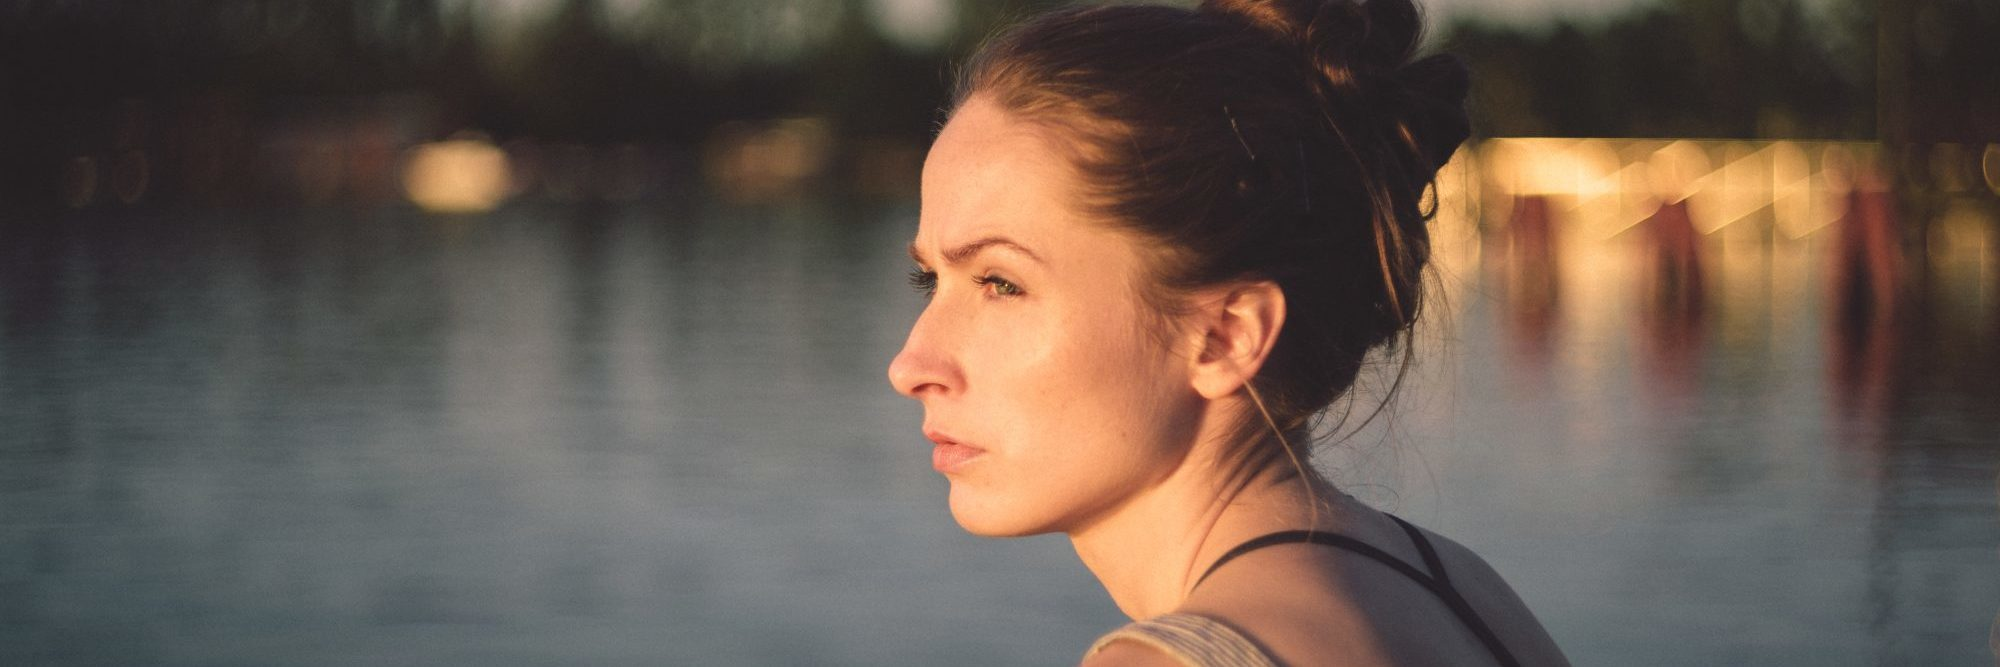 young woman in sunset by water staring out thoughtfully